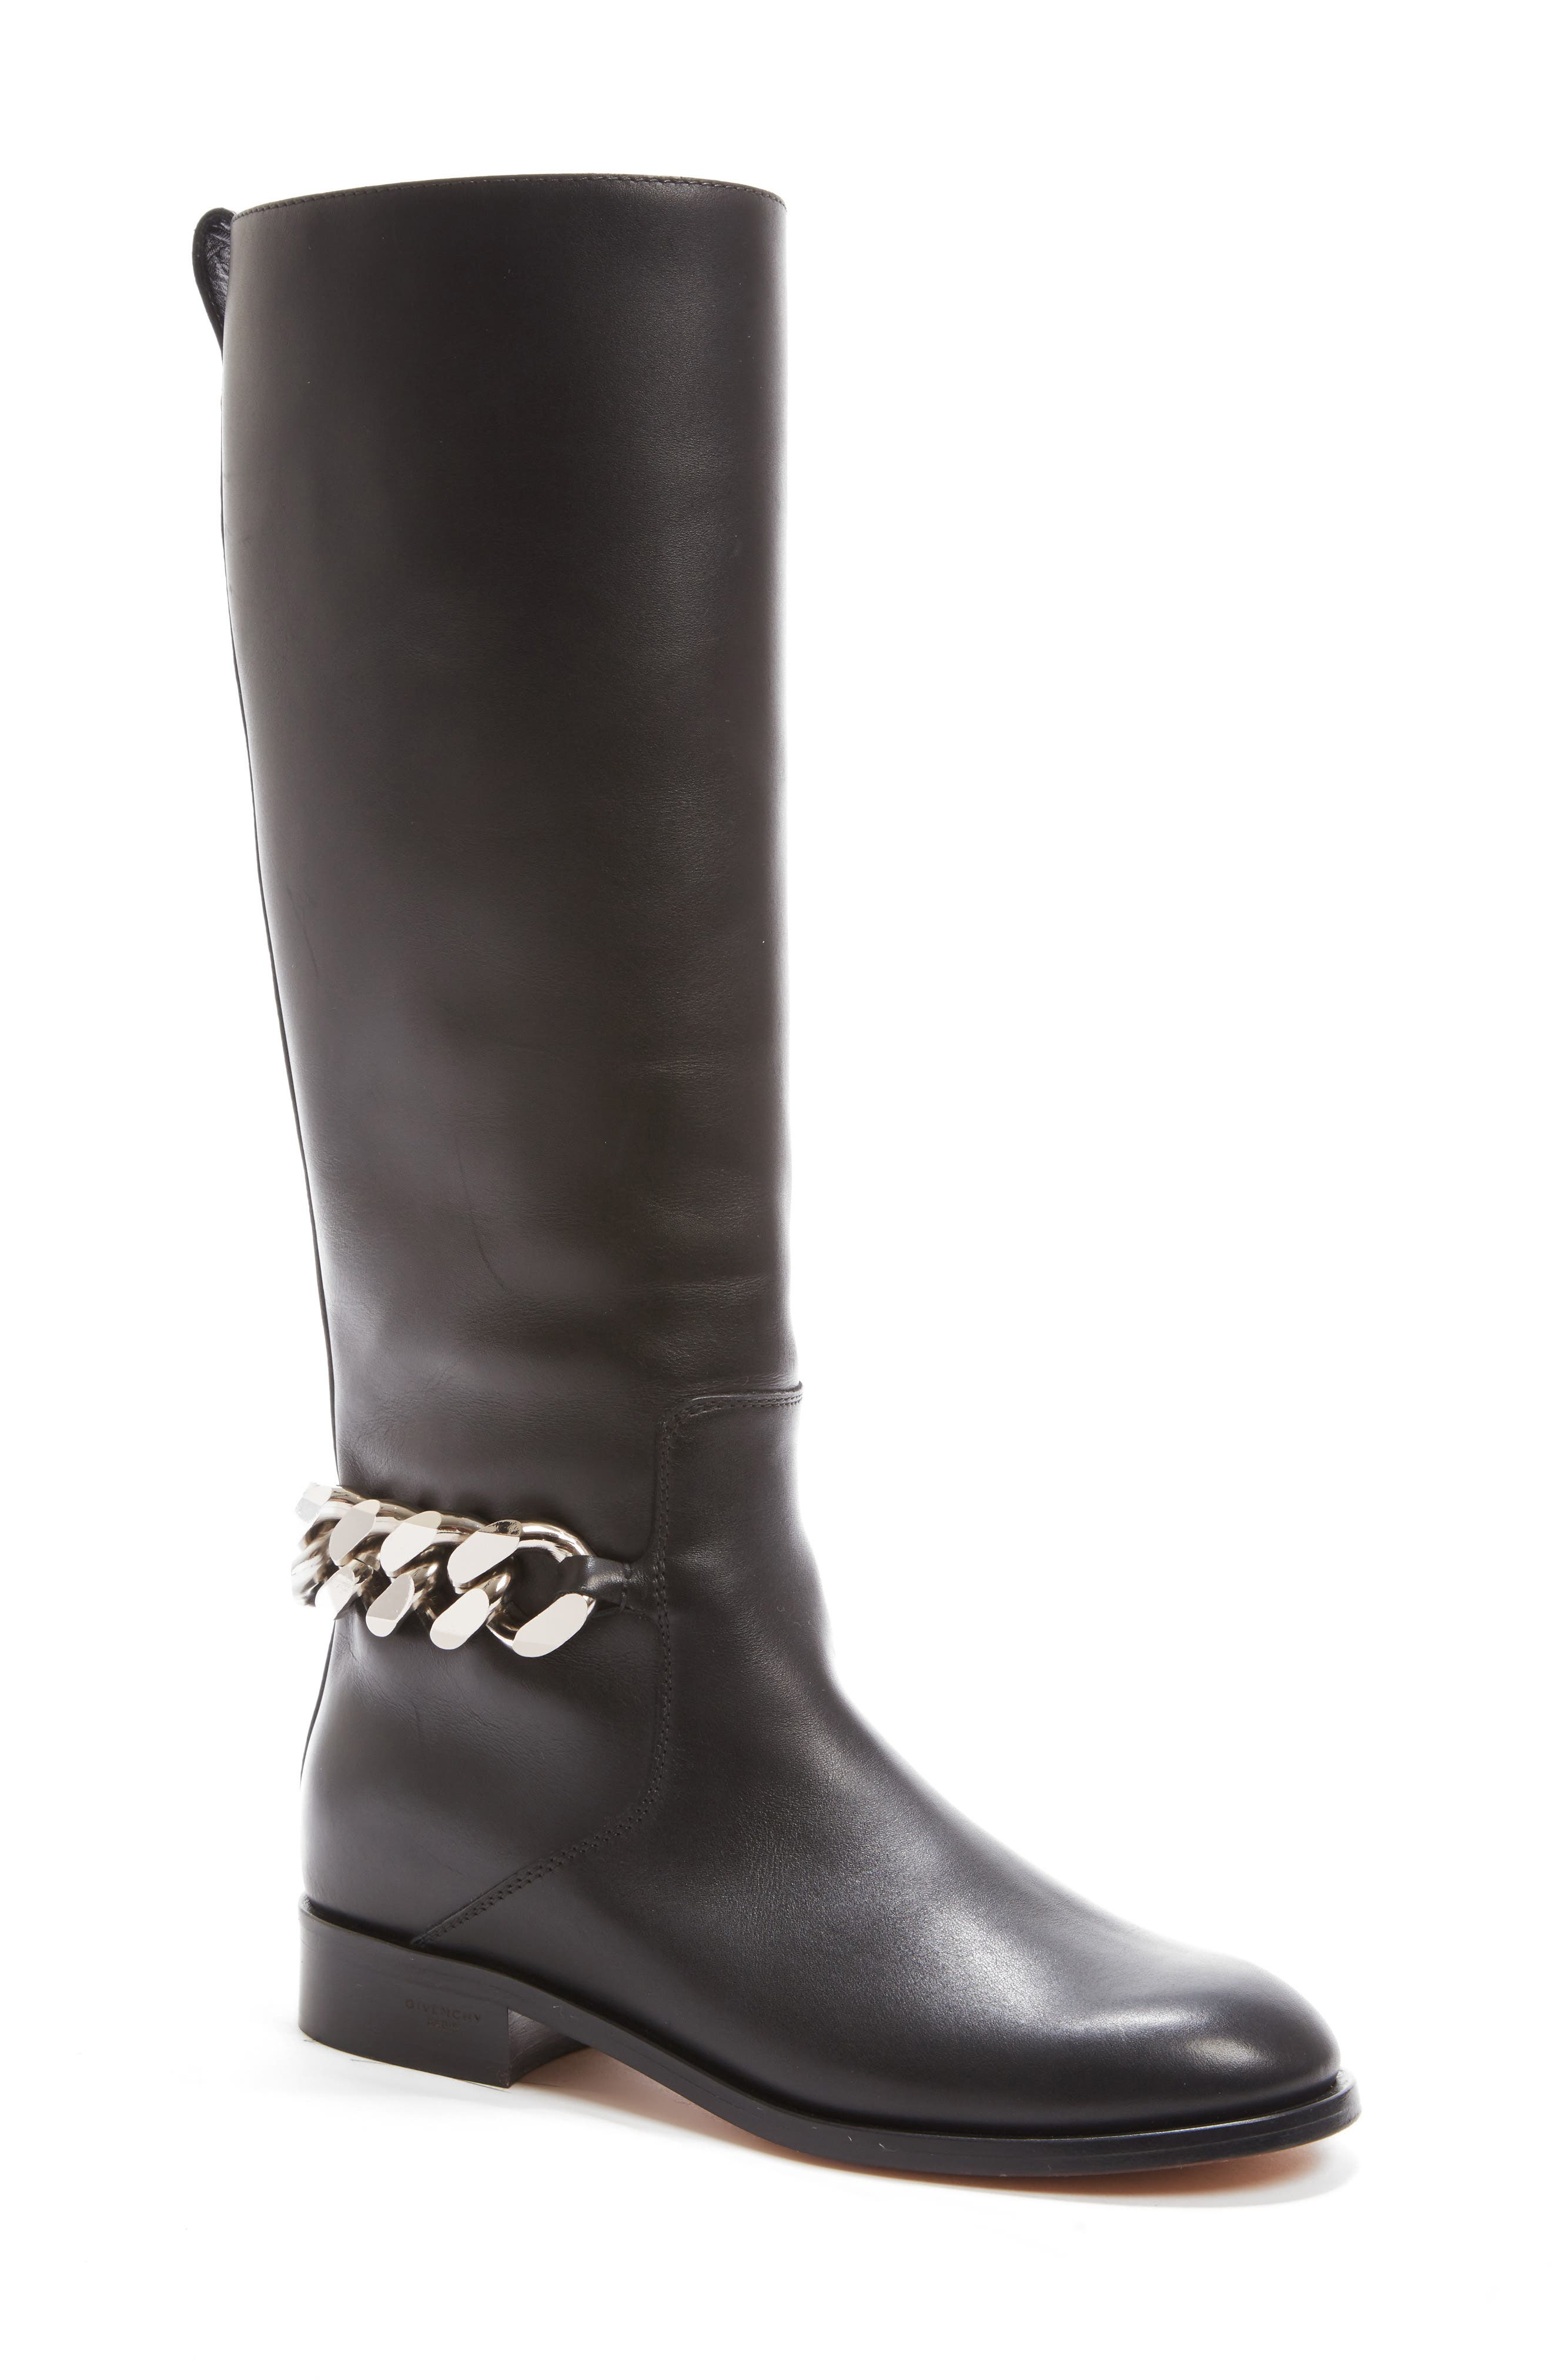 Main Image - Givenchy Chain Tall Boot (Women)